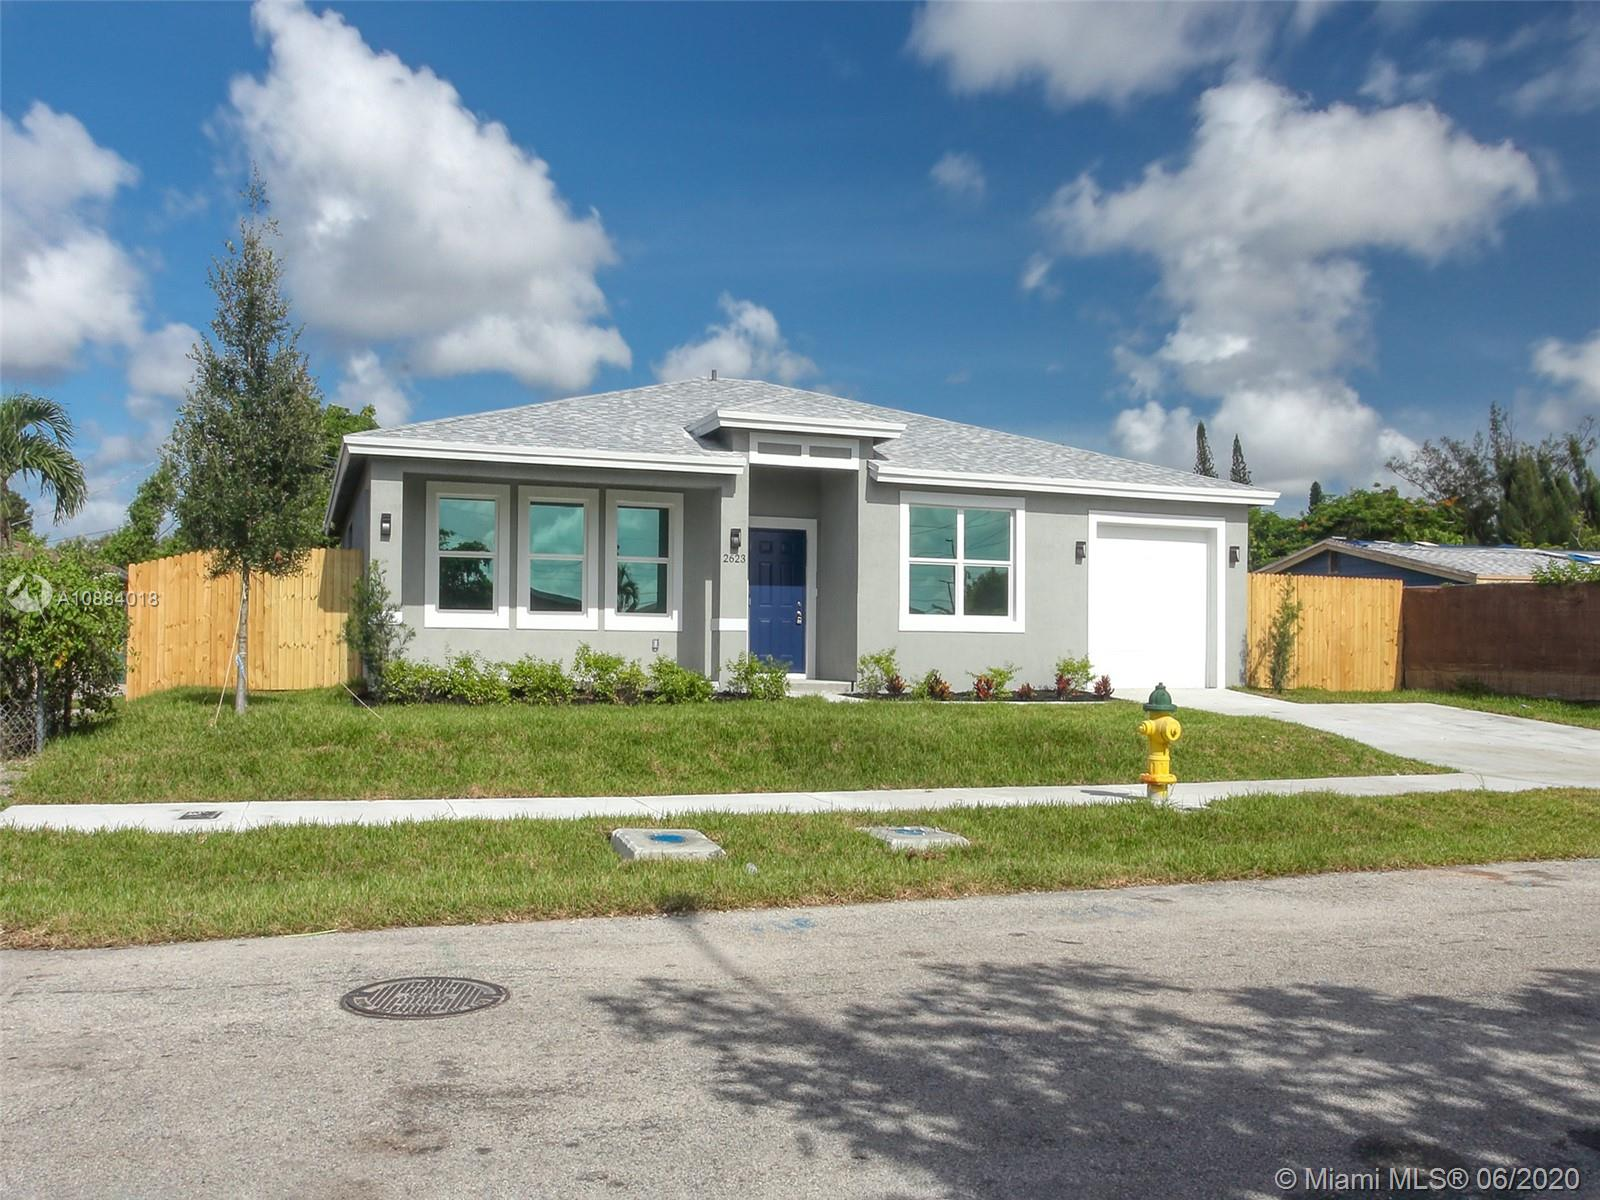 New construction 3 bed 2 bath 1 car garage dream home on a large lot on a quiet street in Oakland Park.   Modern white kitchen with black granite countertops, tile throughout.  Large master with  walk in shower and large walk in closet.  Features include hurricane impact glass windows and doors, tankless water heater, energy efficient air conditioner, and all stainless steel kitchen appliances.  Washer and dryer included.  Large lot with wood fence, room for a pool.  No association, no fees.  Includes 1 year builders warranty.